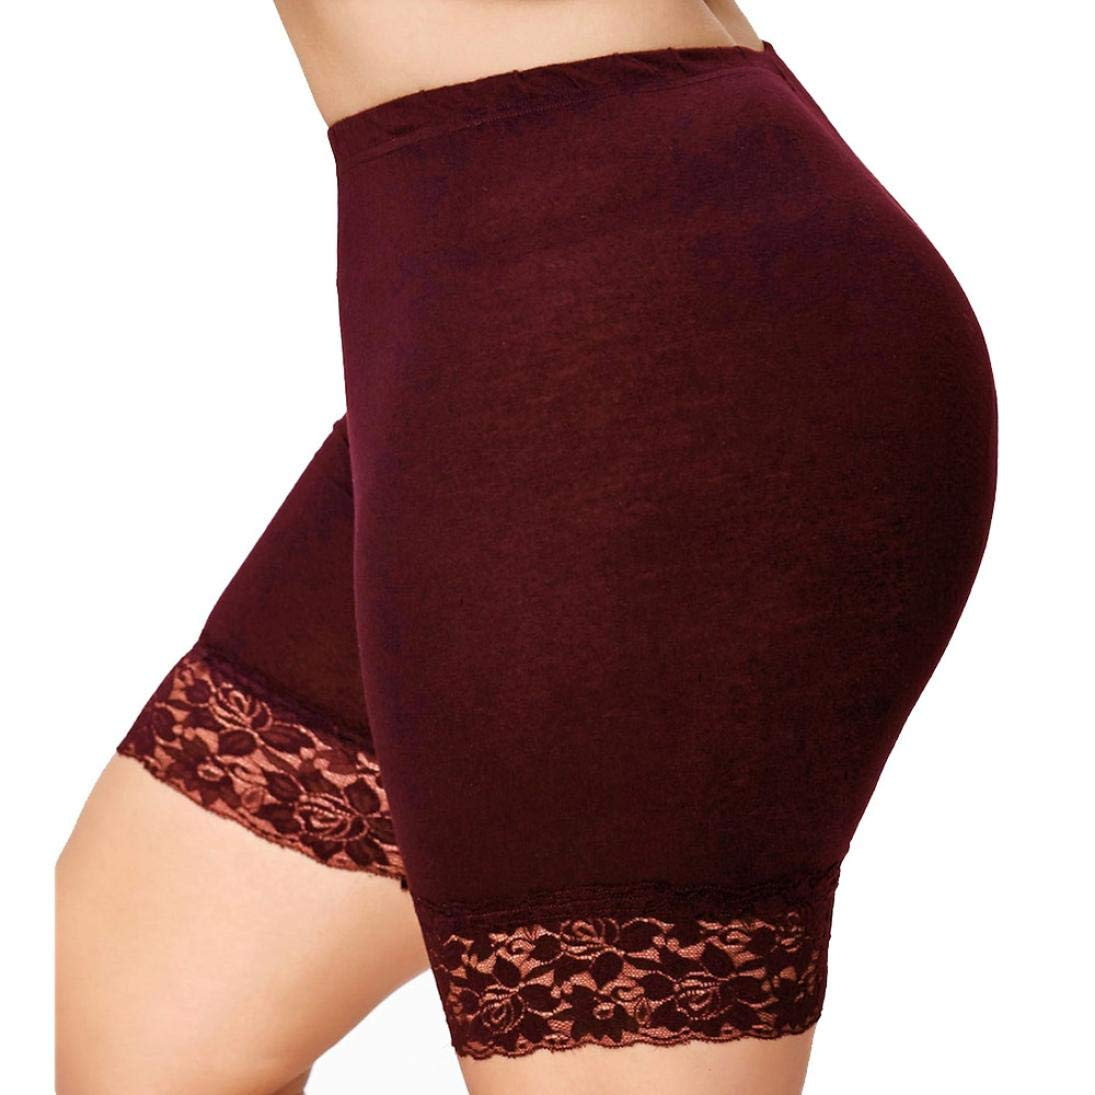 Womens Plus Size Lace Shorts Elastic Sports Pants Leggings Muranba